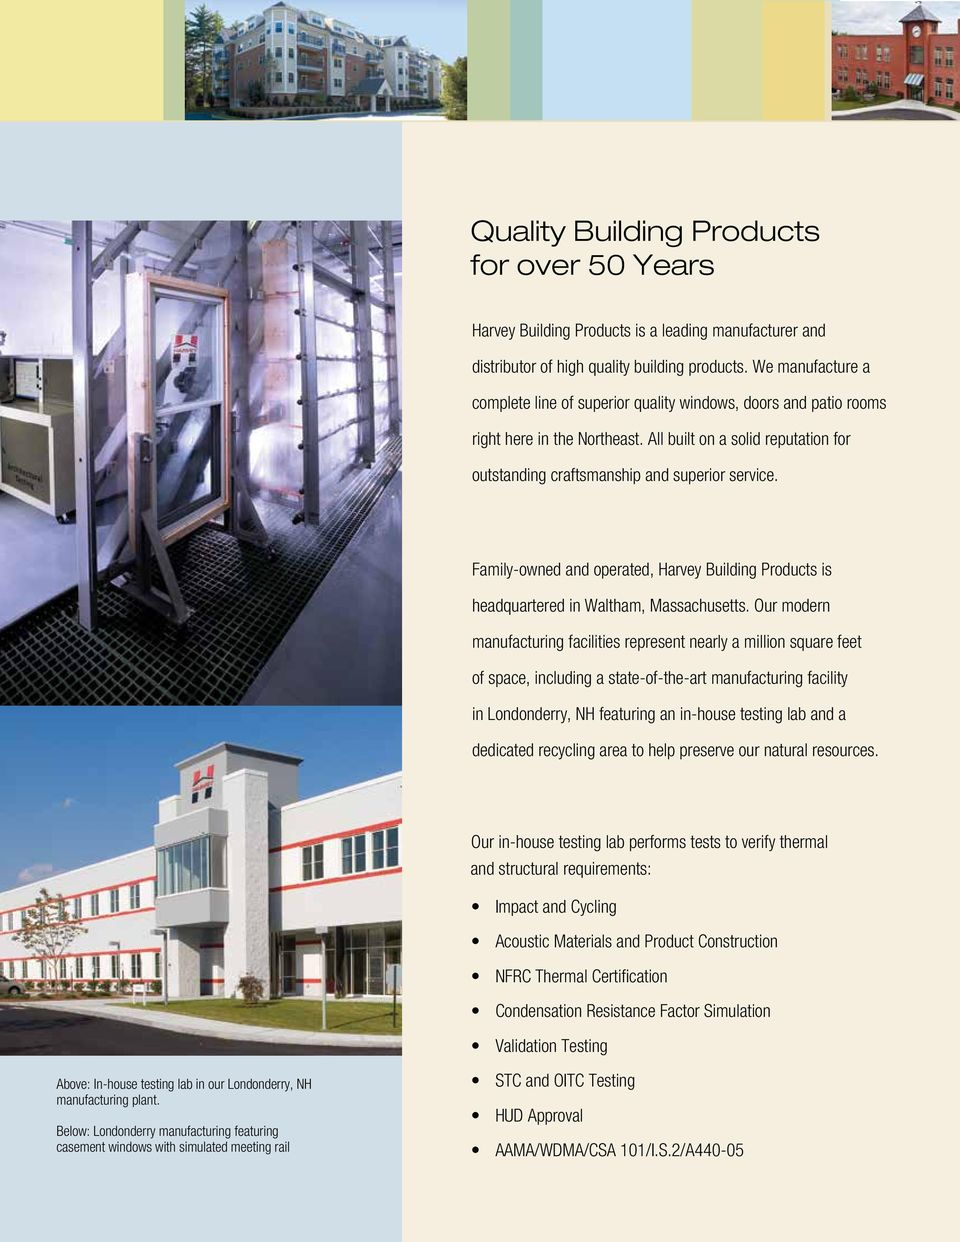 Family-owned and operated, Harvey Building Products is headquartered in Waltham, Massachusetts.